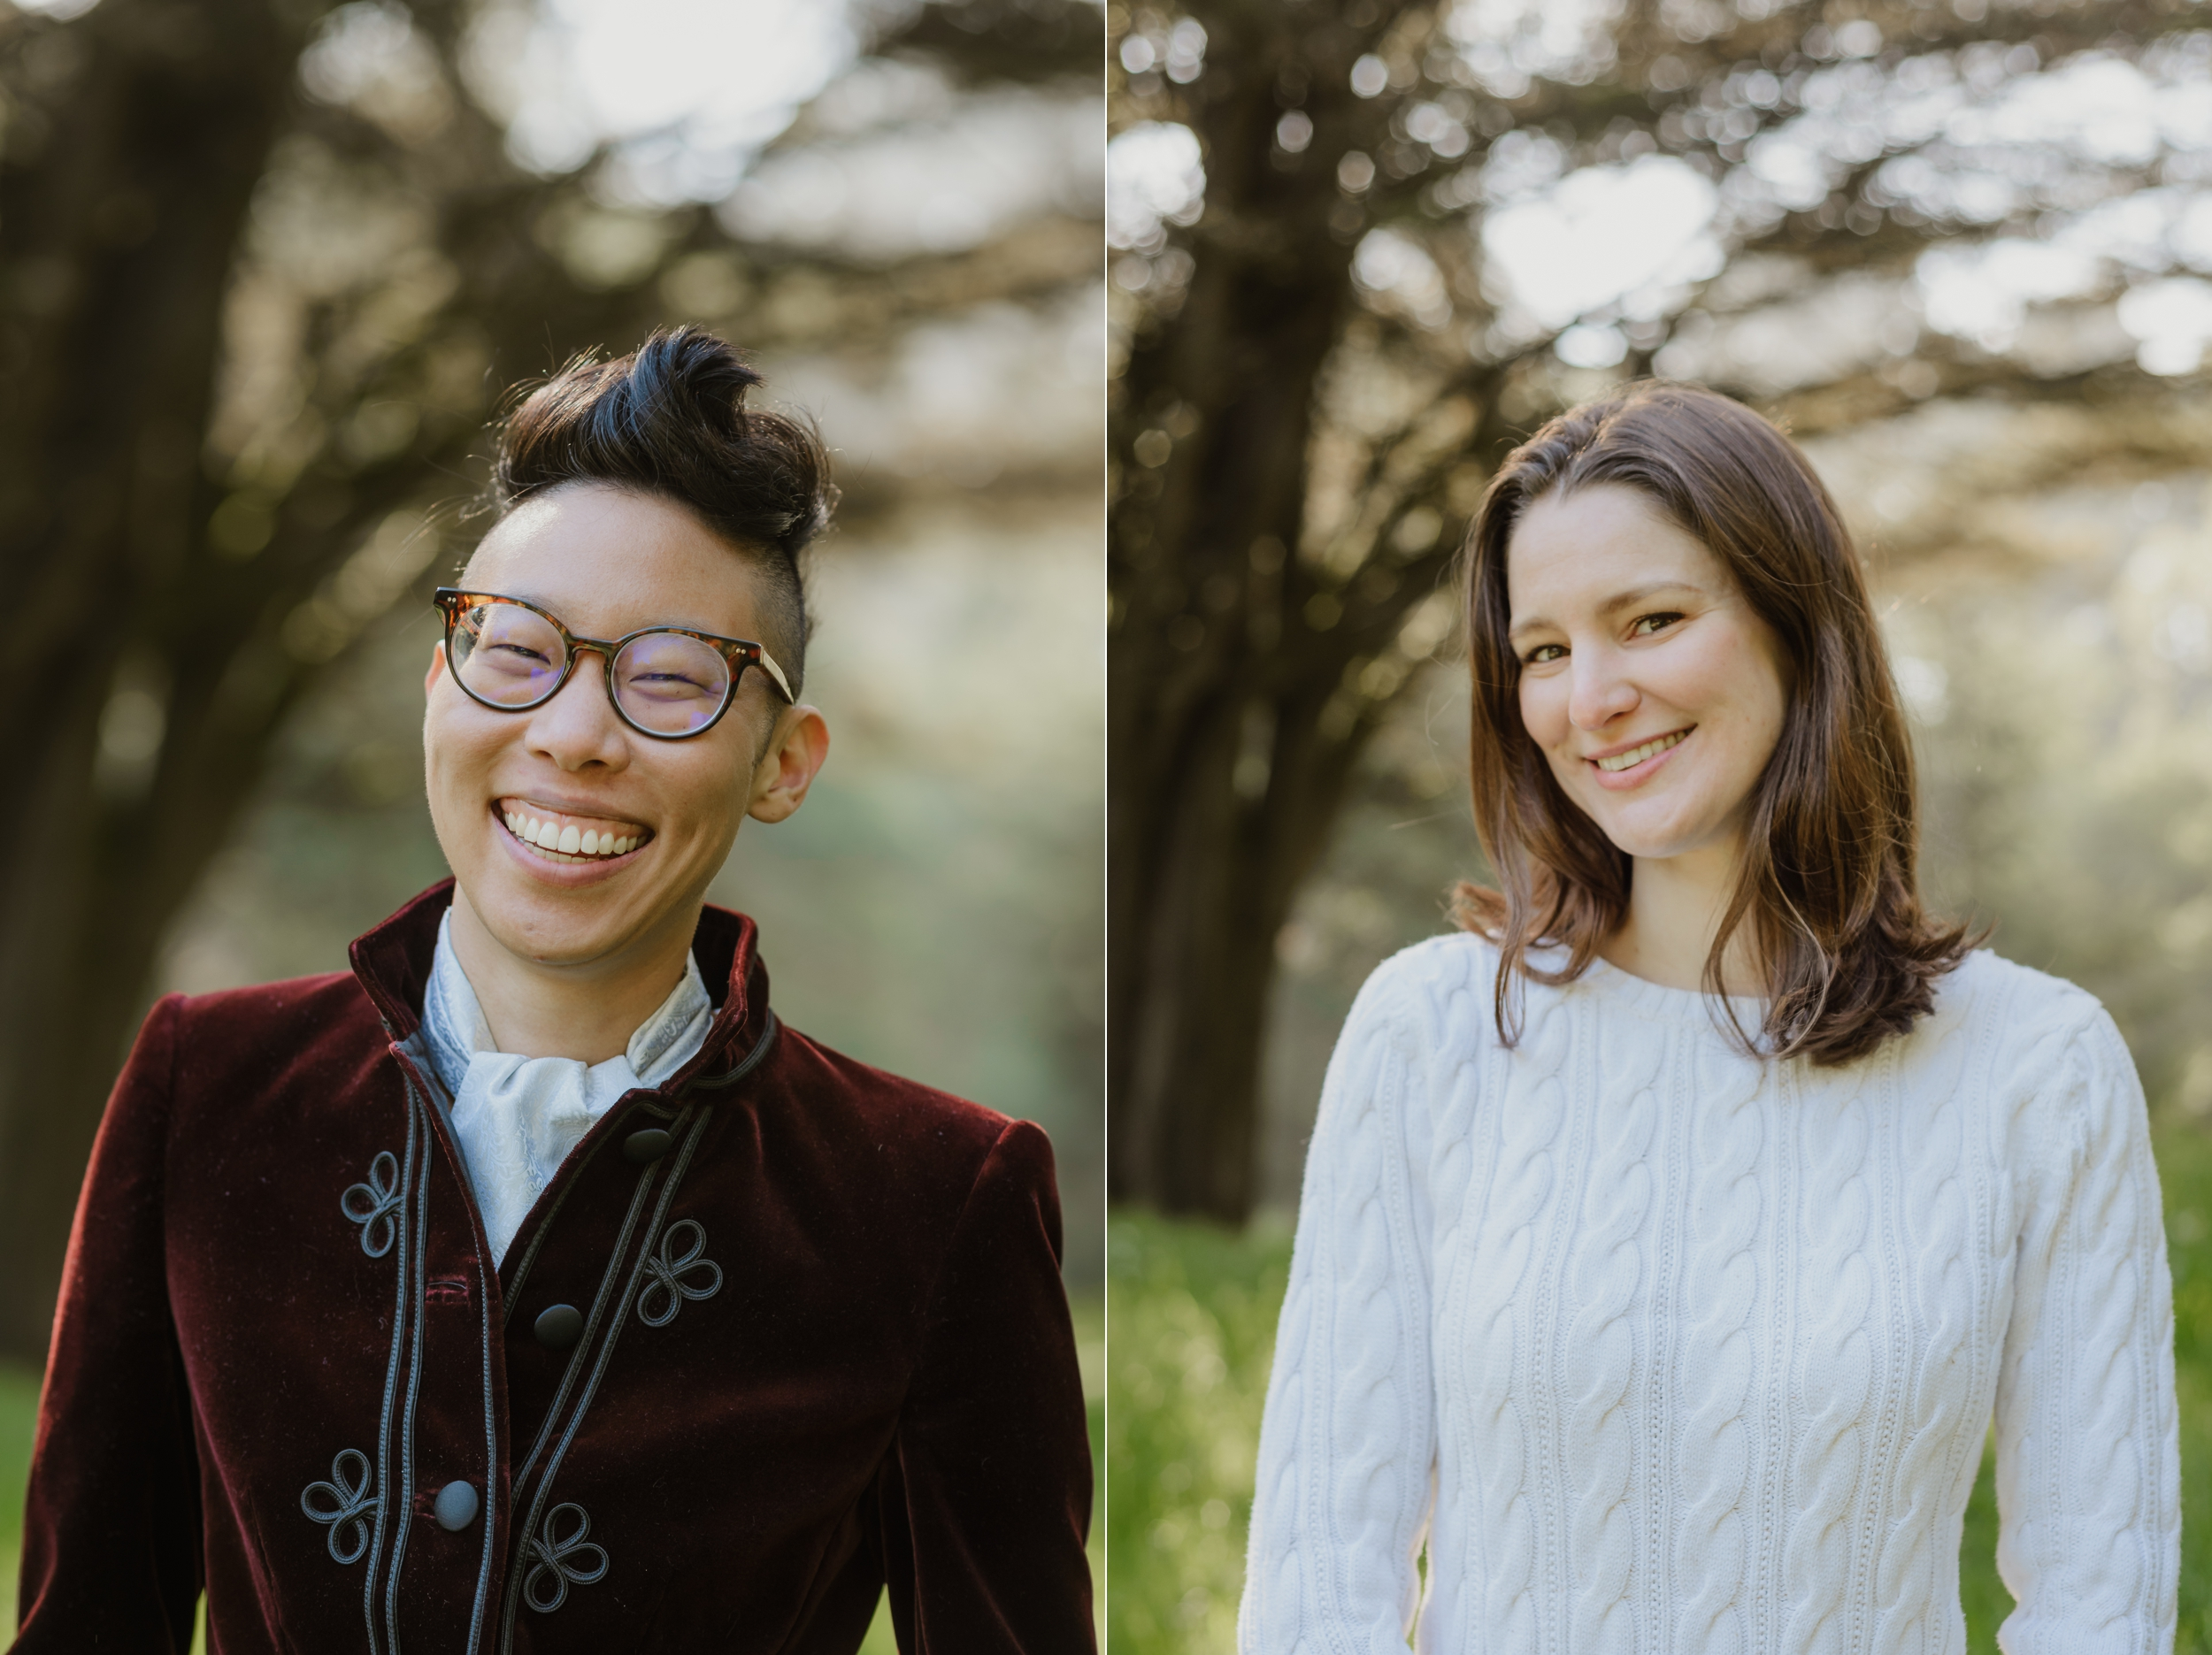 oakland-redwood-regional-park-engagement-session-vivianchen-147_WEB.jpg